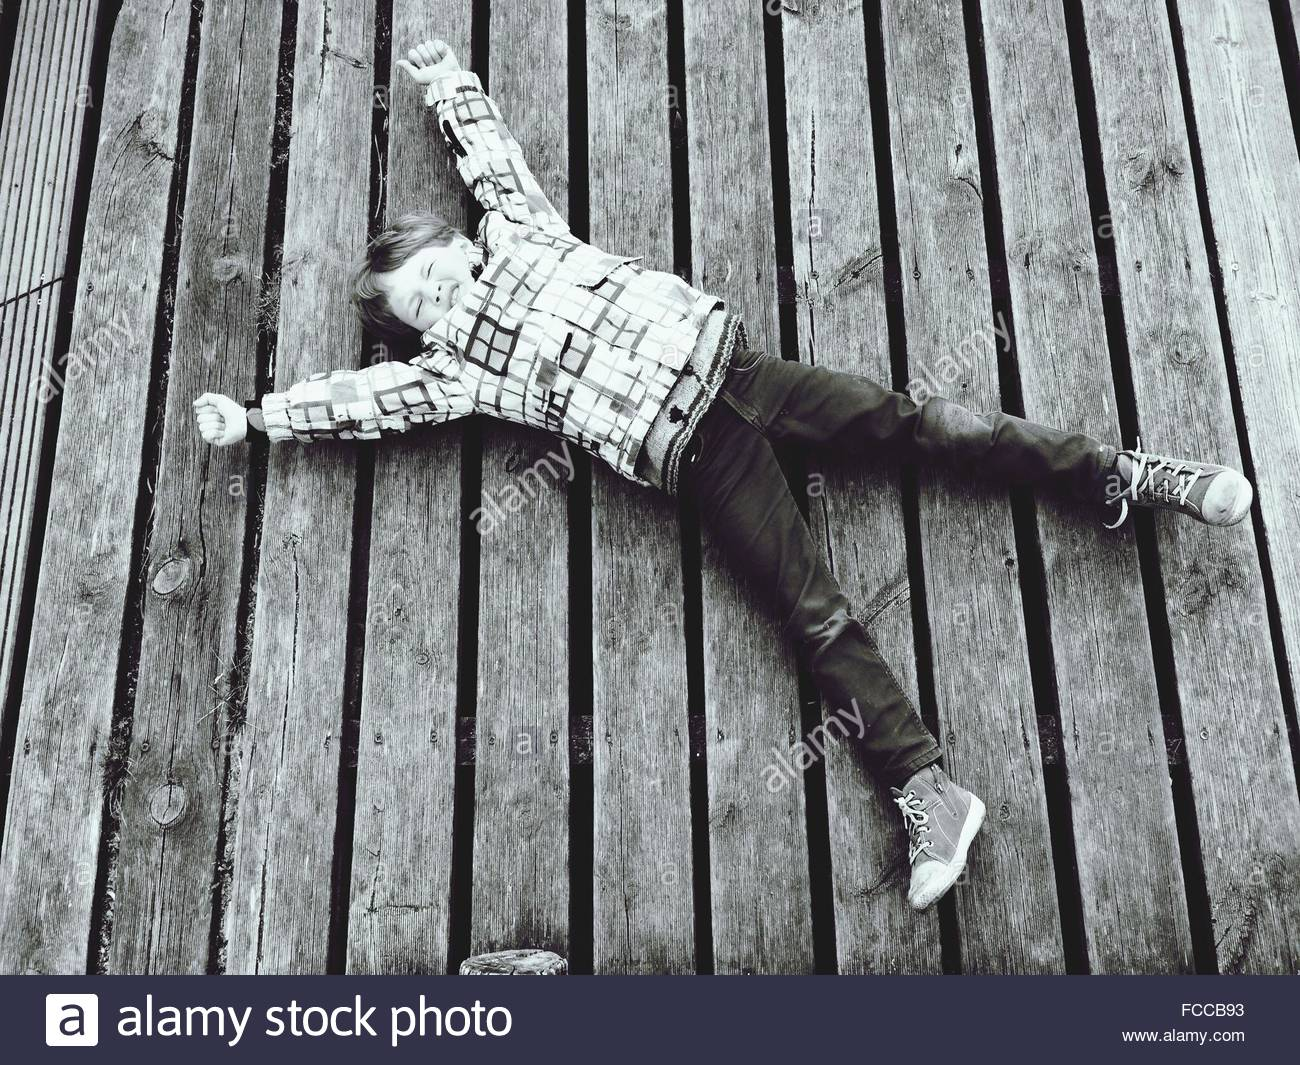 Full Length Of Boy Stretching While Lying On Boardwalk - Stock Image